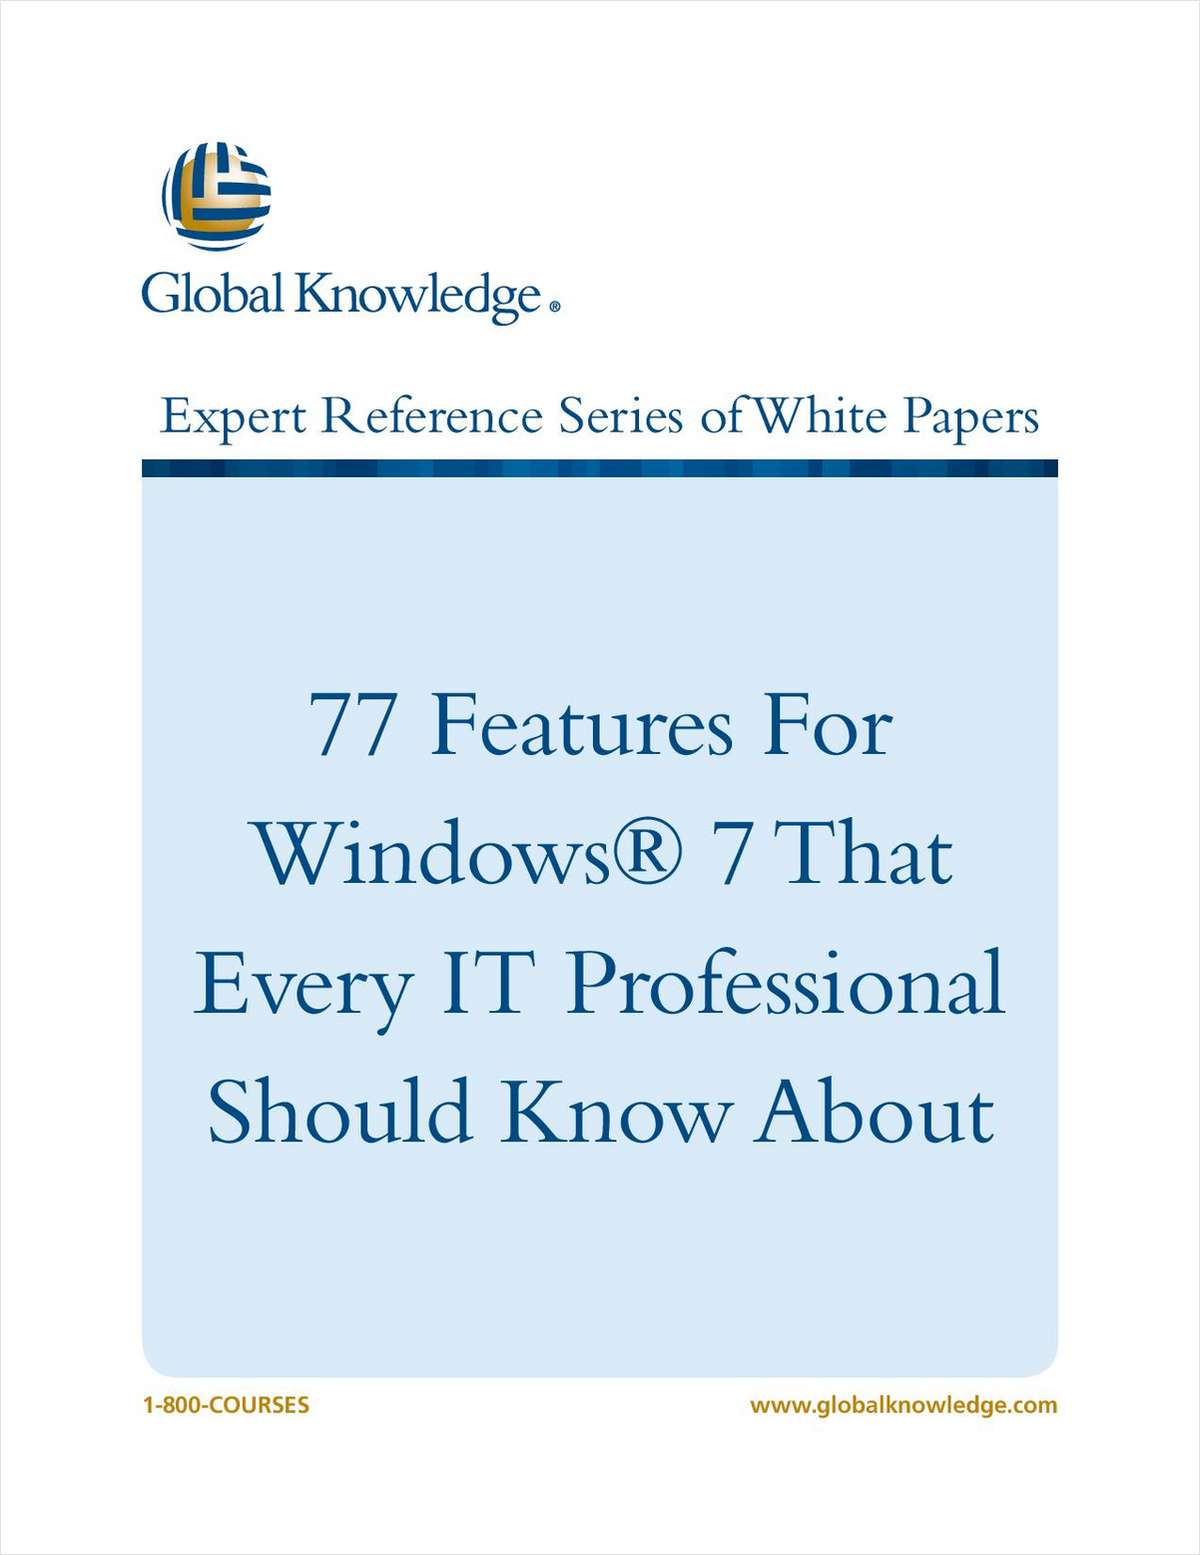 77 Features For Windows 7 That Every IT Professional Should Know About